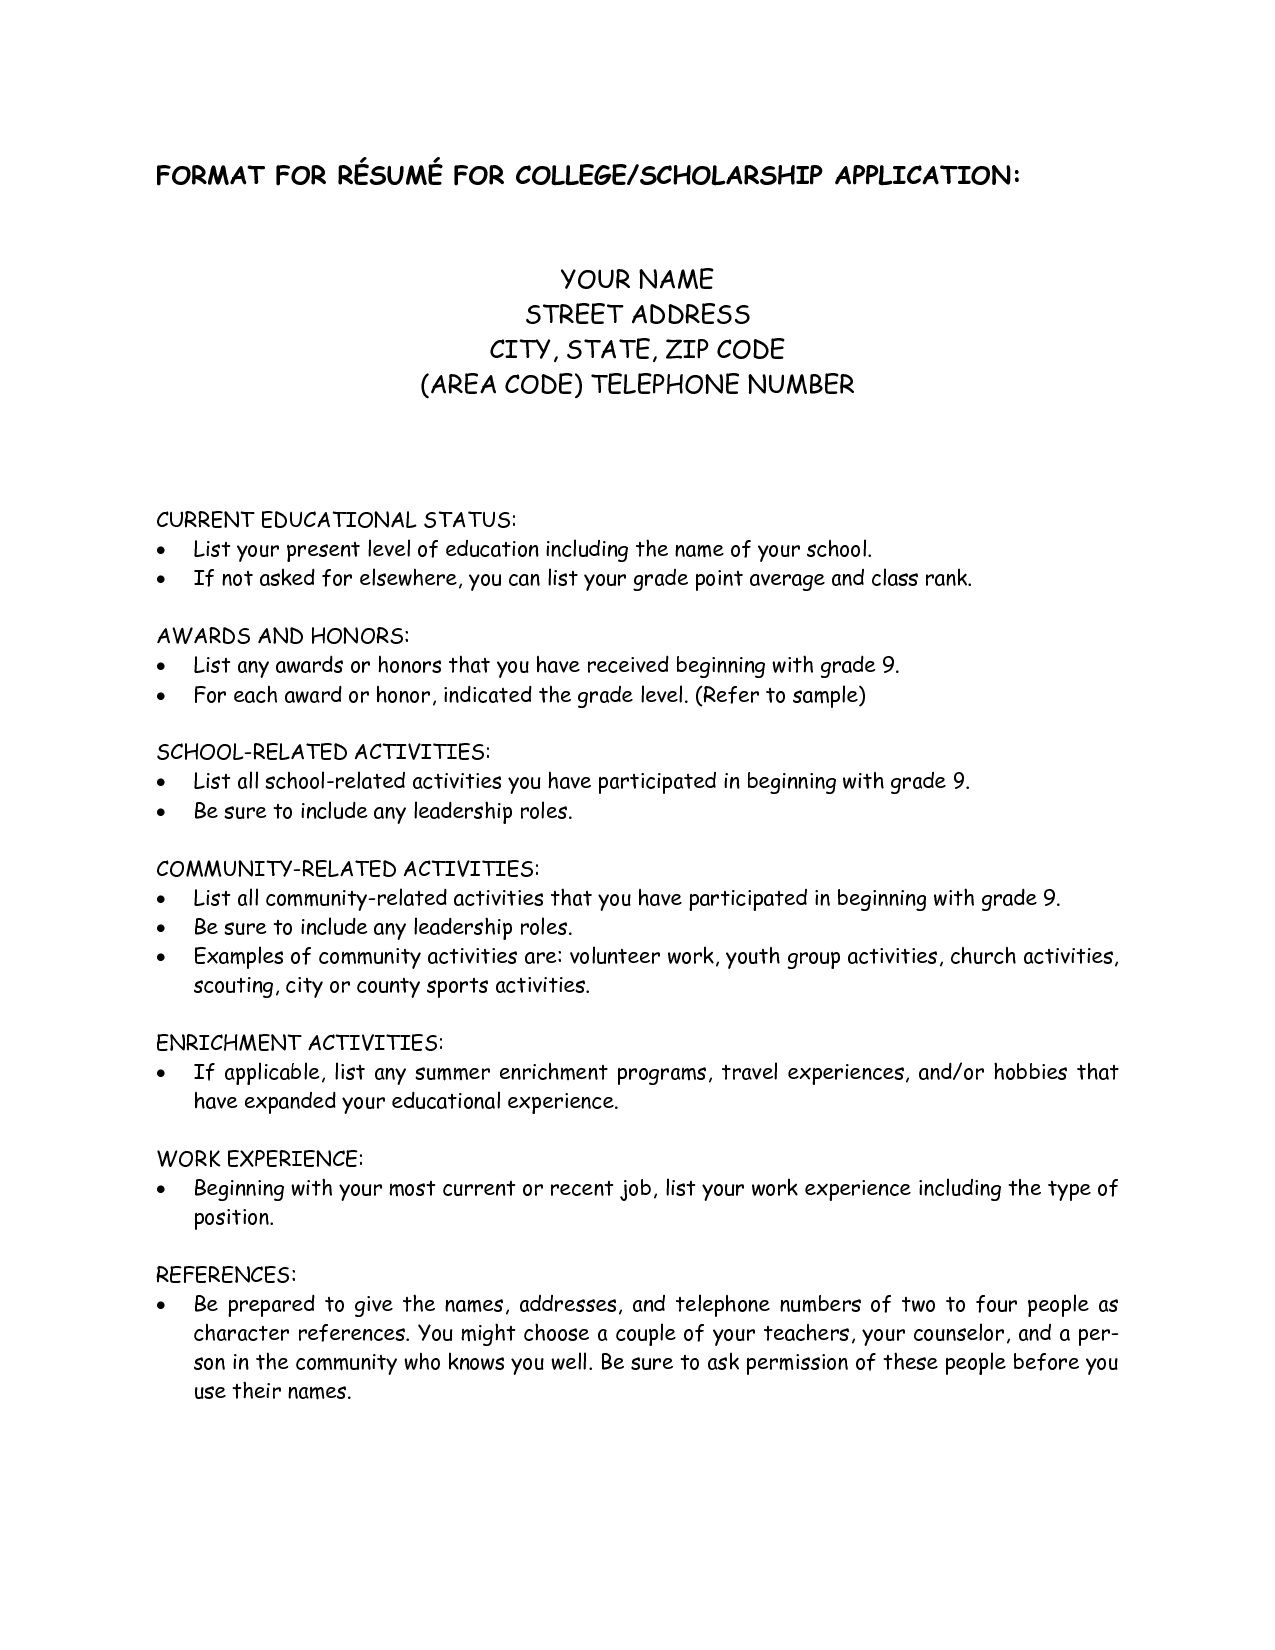 College Scholarship Resume Template 1197